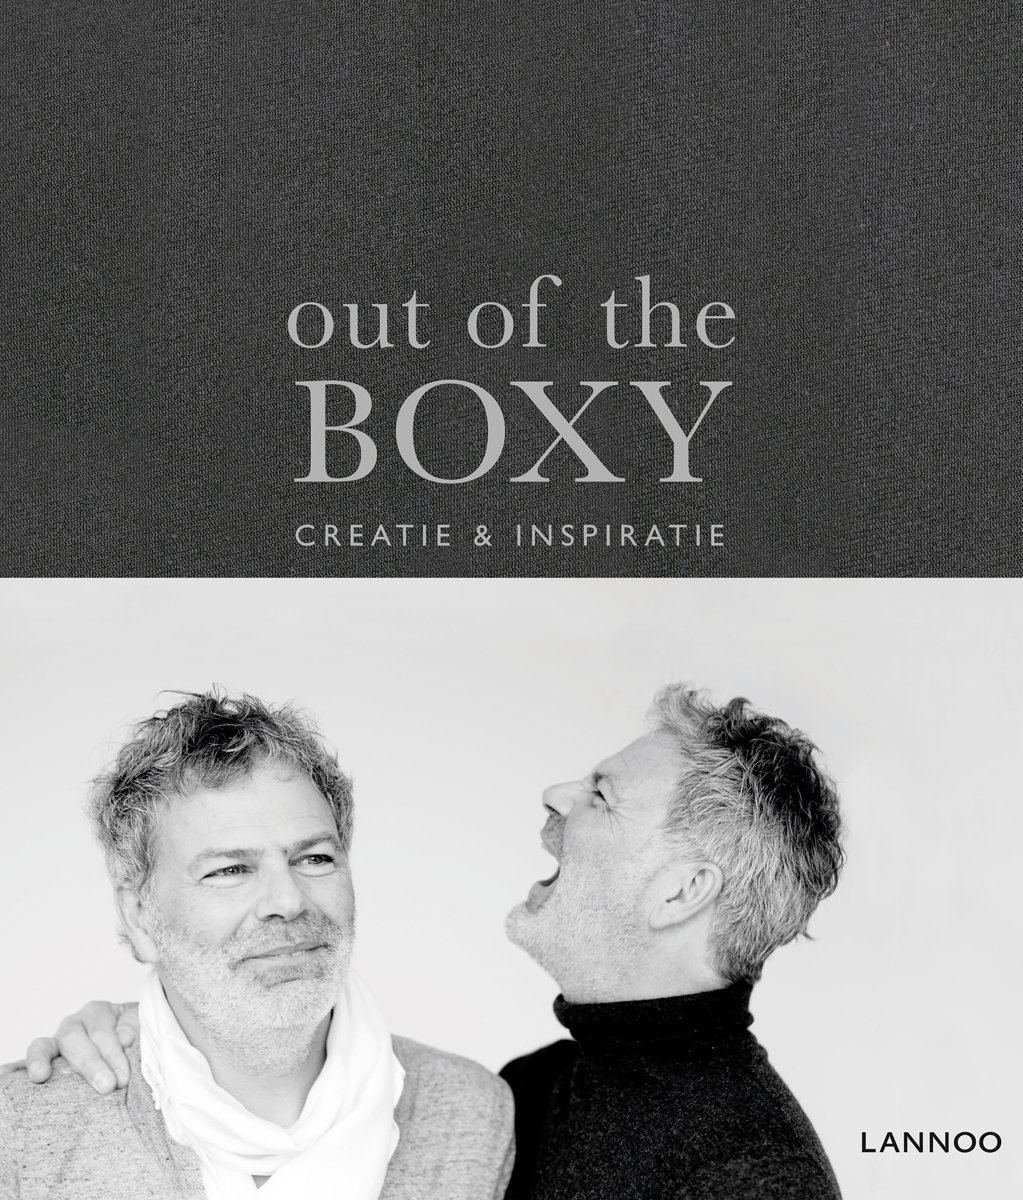 Out of the boxy creatie & inspirate